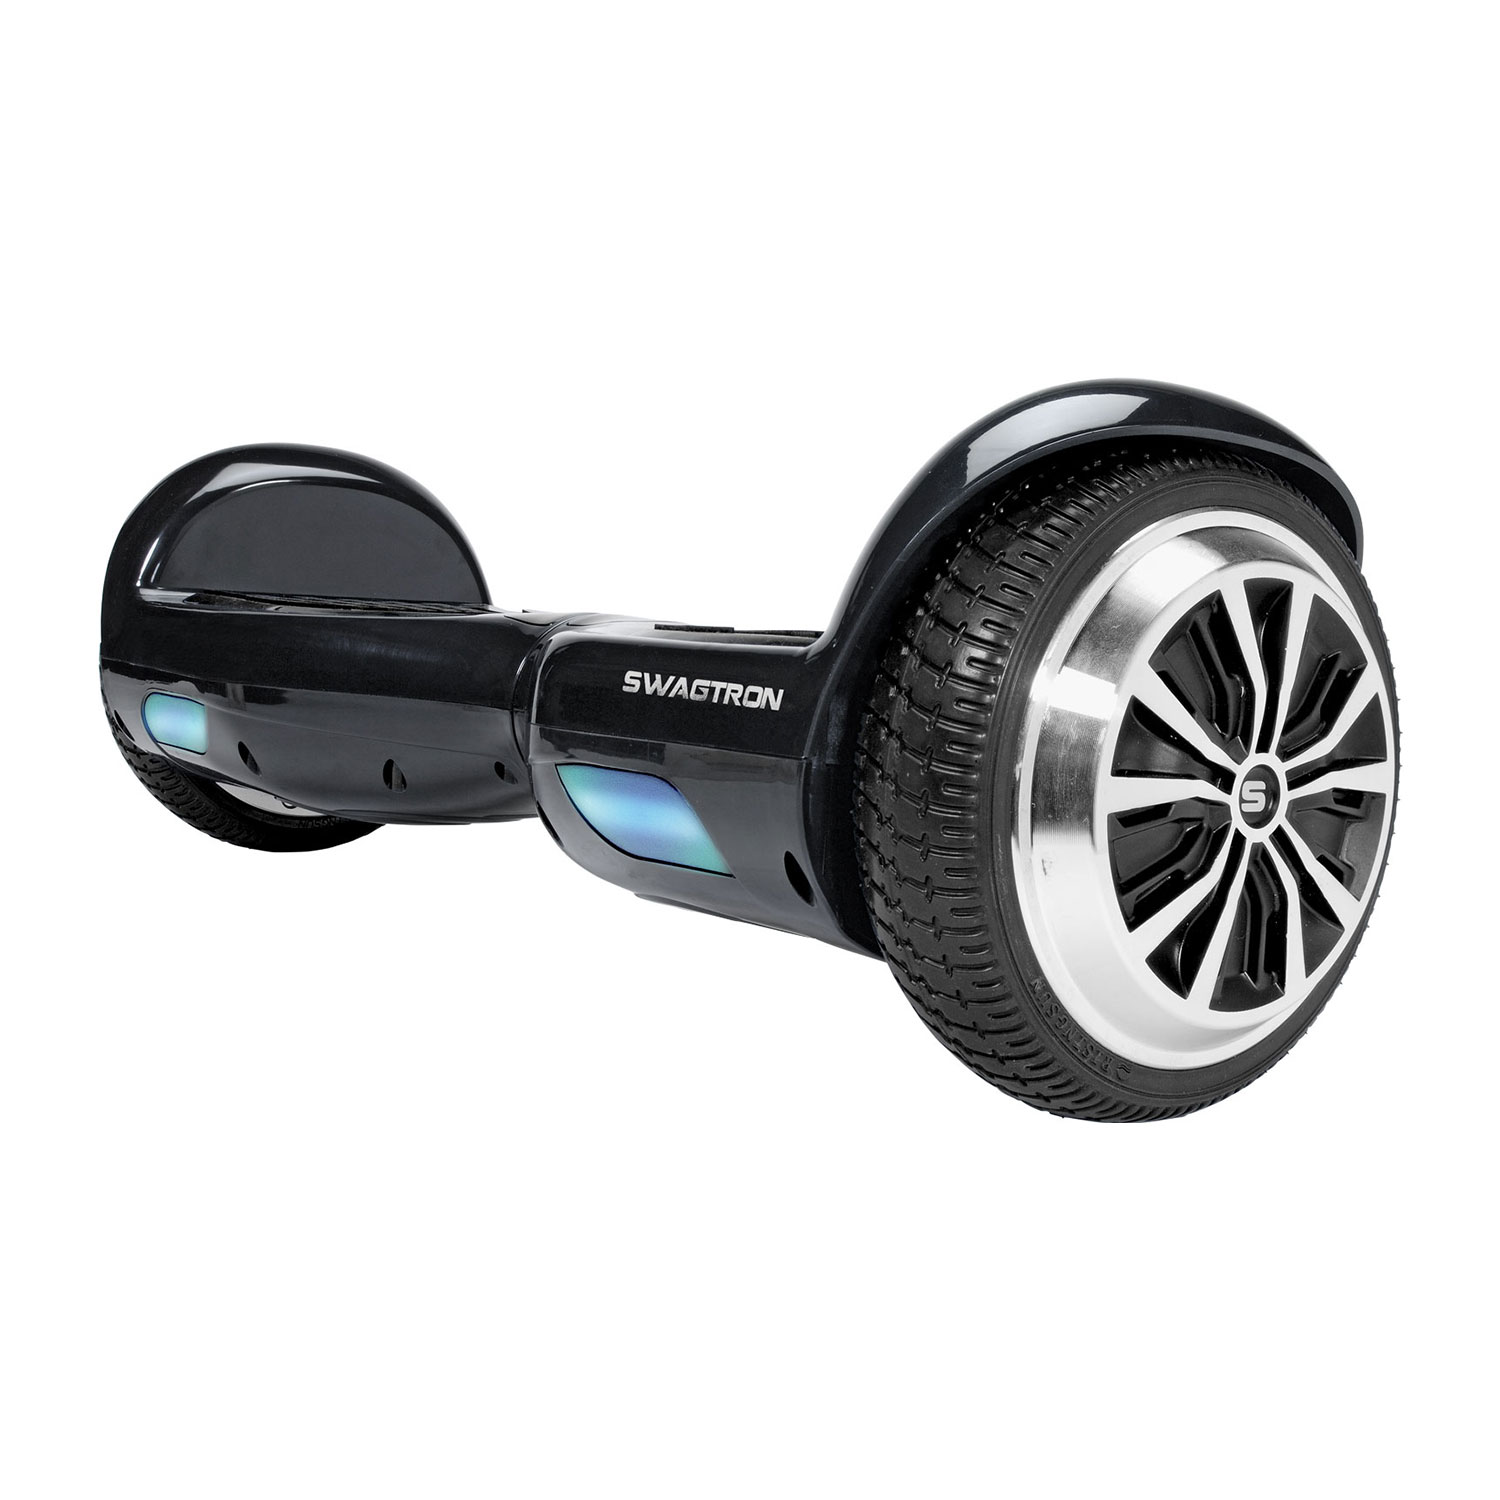 swagboard twist hoverboard on white background